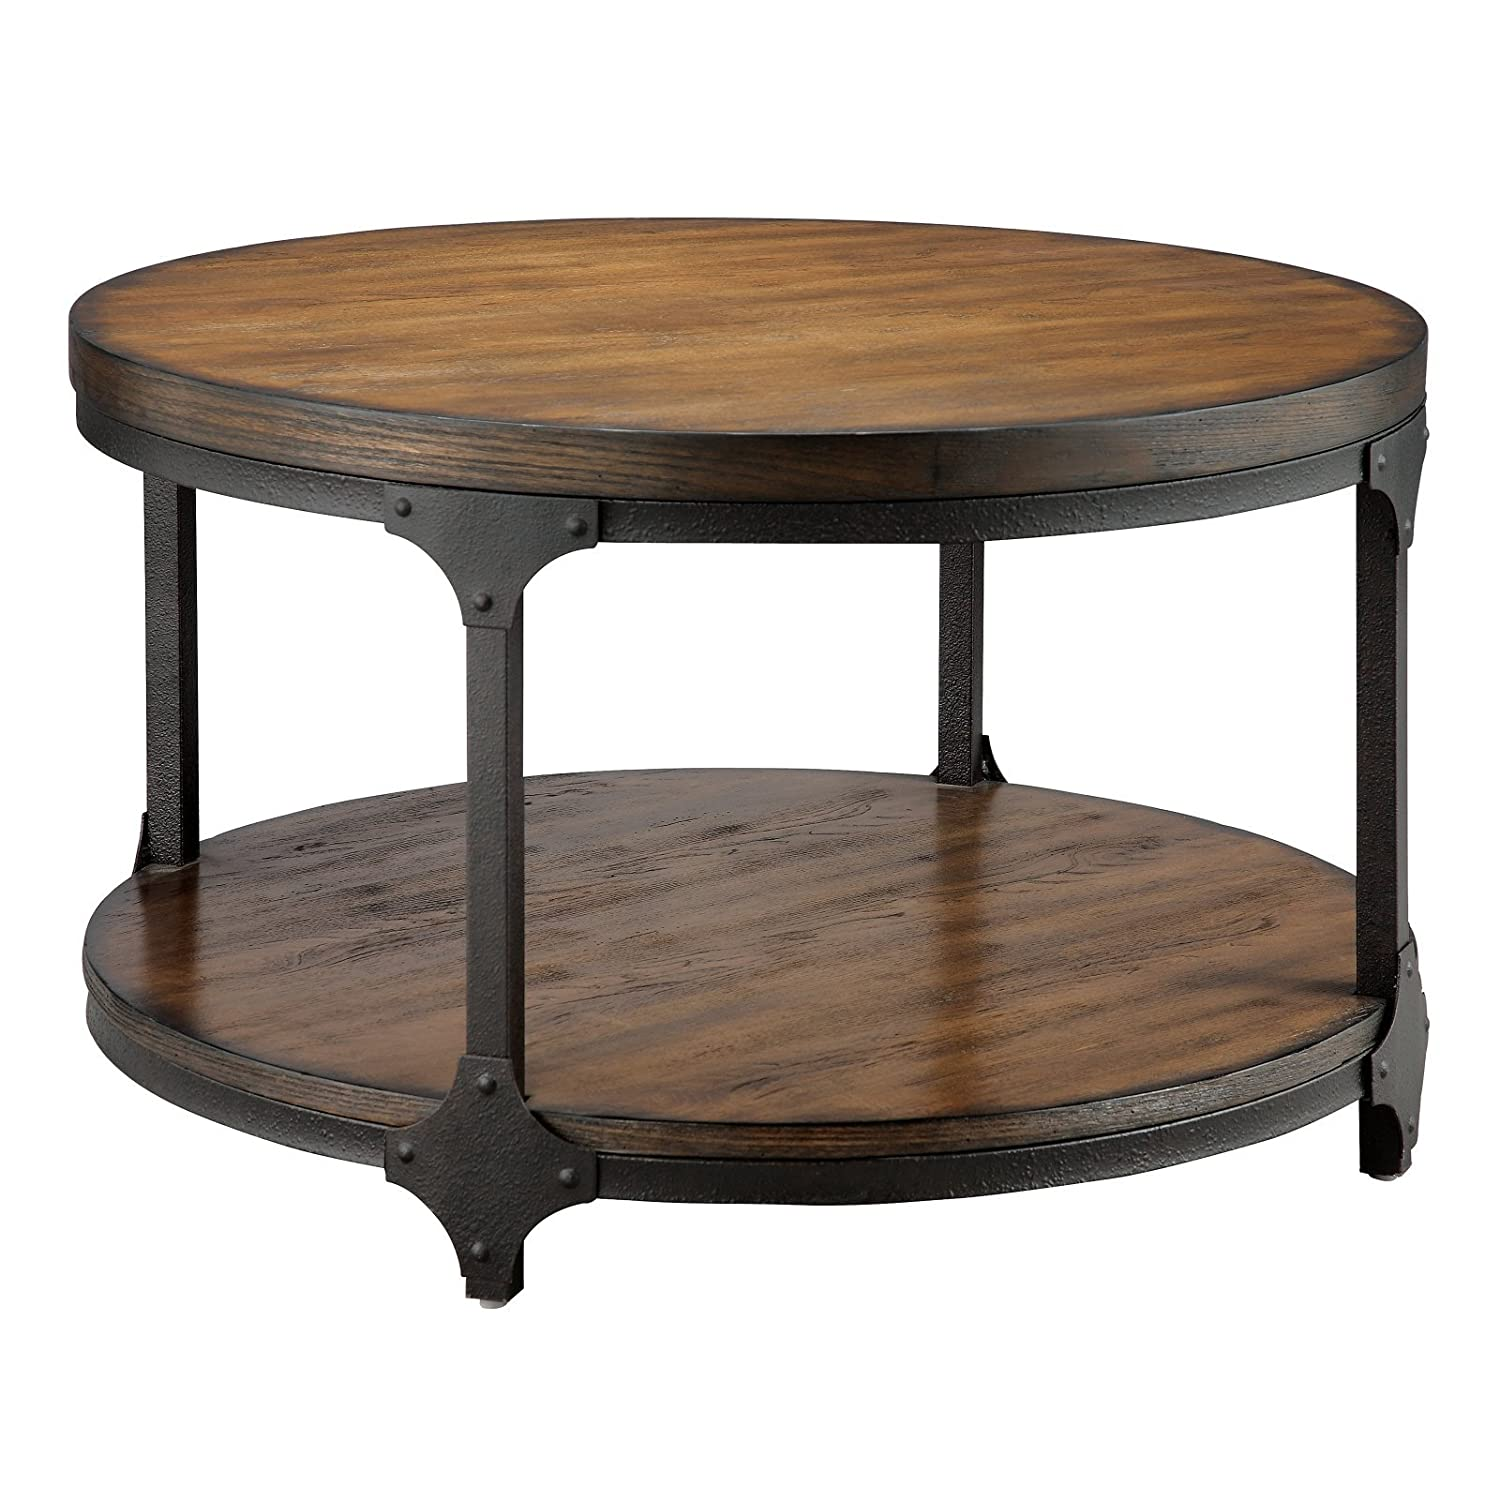 Rustic industrial style round wood metal coffee cocktail table Round rustic coffee table